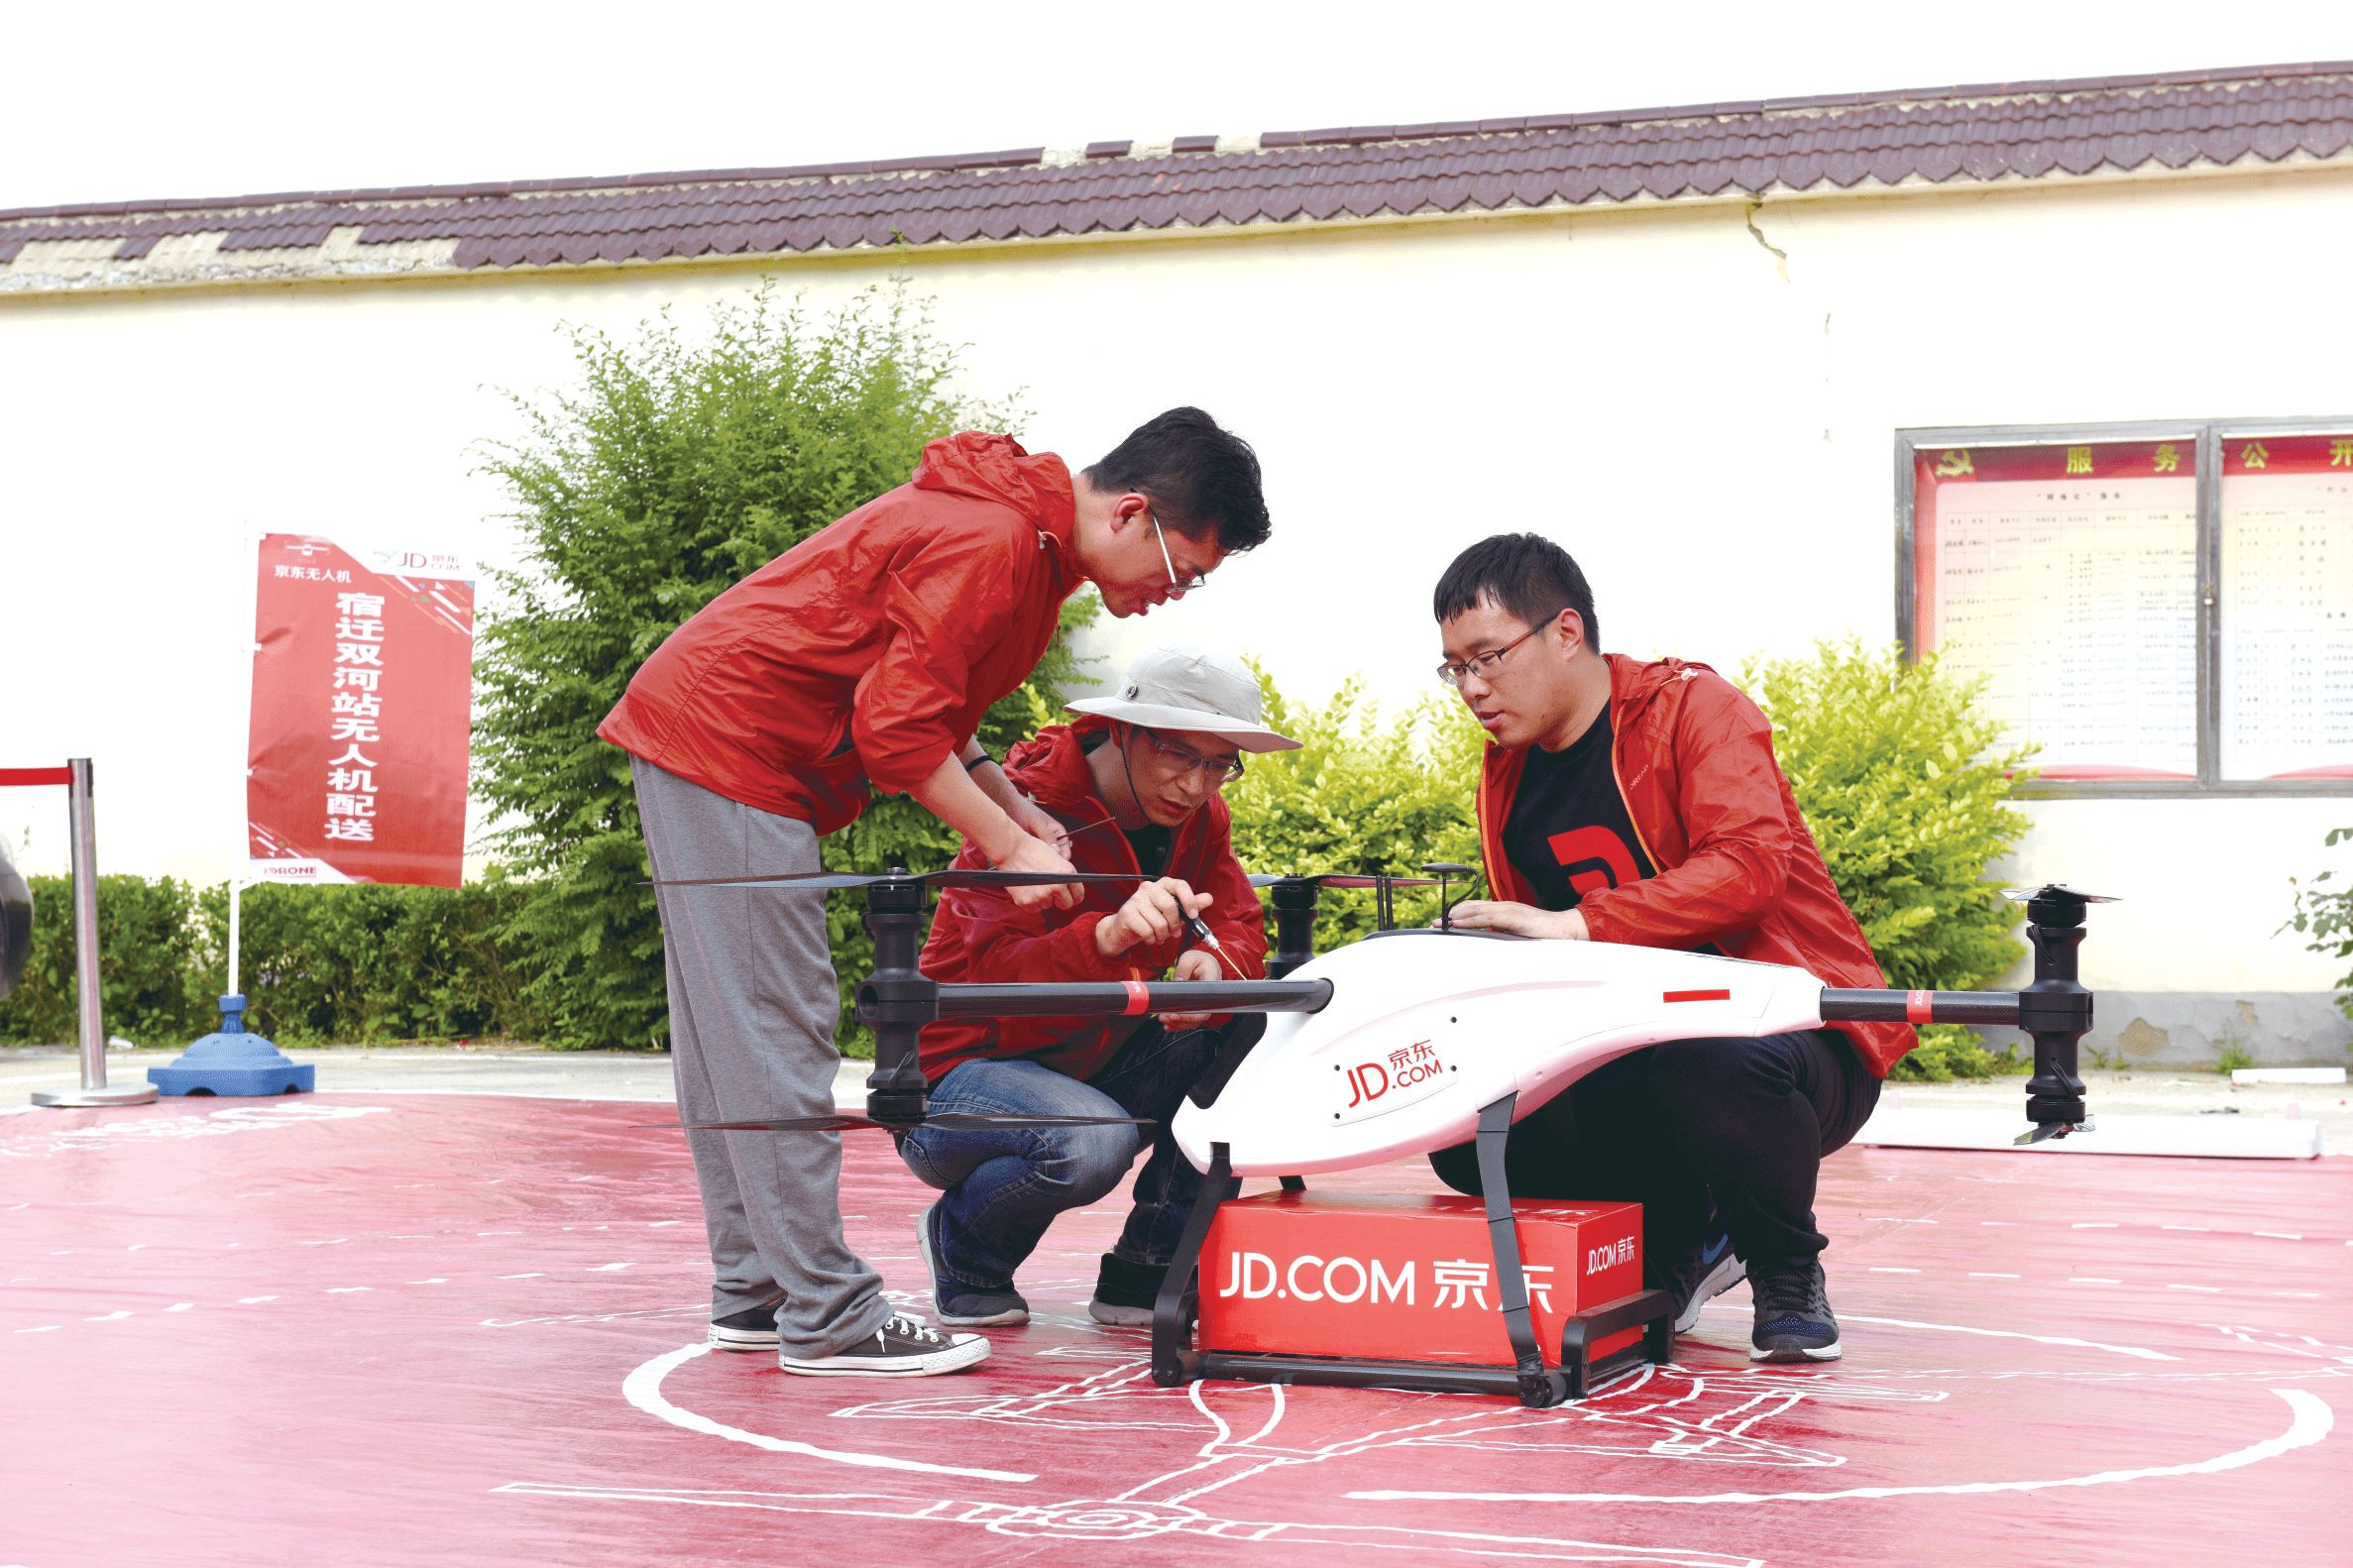 Staff from JD.com using drones to deliver parcels to rural shoppers [Photo: news.zol.com.cn]